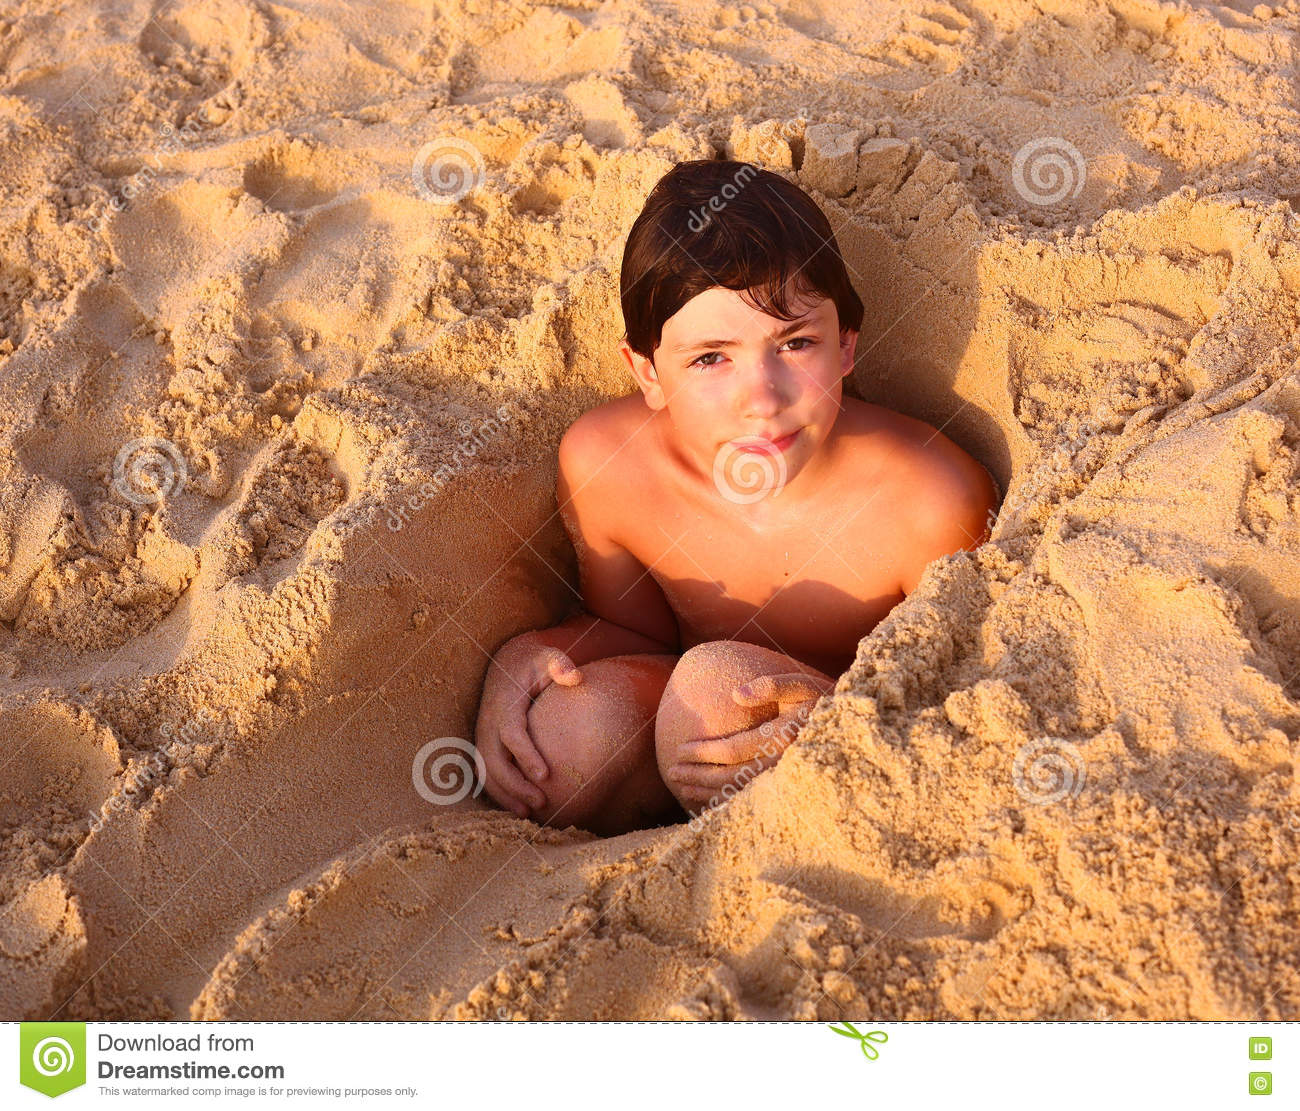 Preteen Handsome Boy In The Sand Stock Photo - Image: 70333965: https://www.dreamstime.com/stock-photo-preteen-handsome-boy-sand-cave-thai-beach-happy-close-up-portrait-image70333965